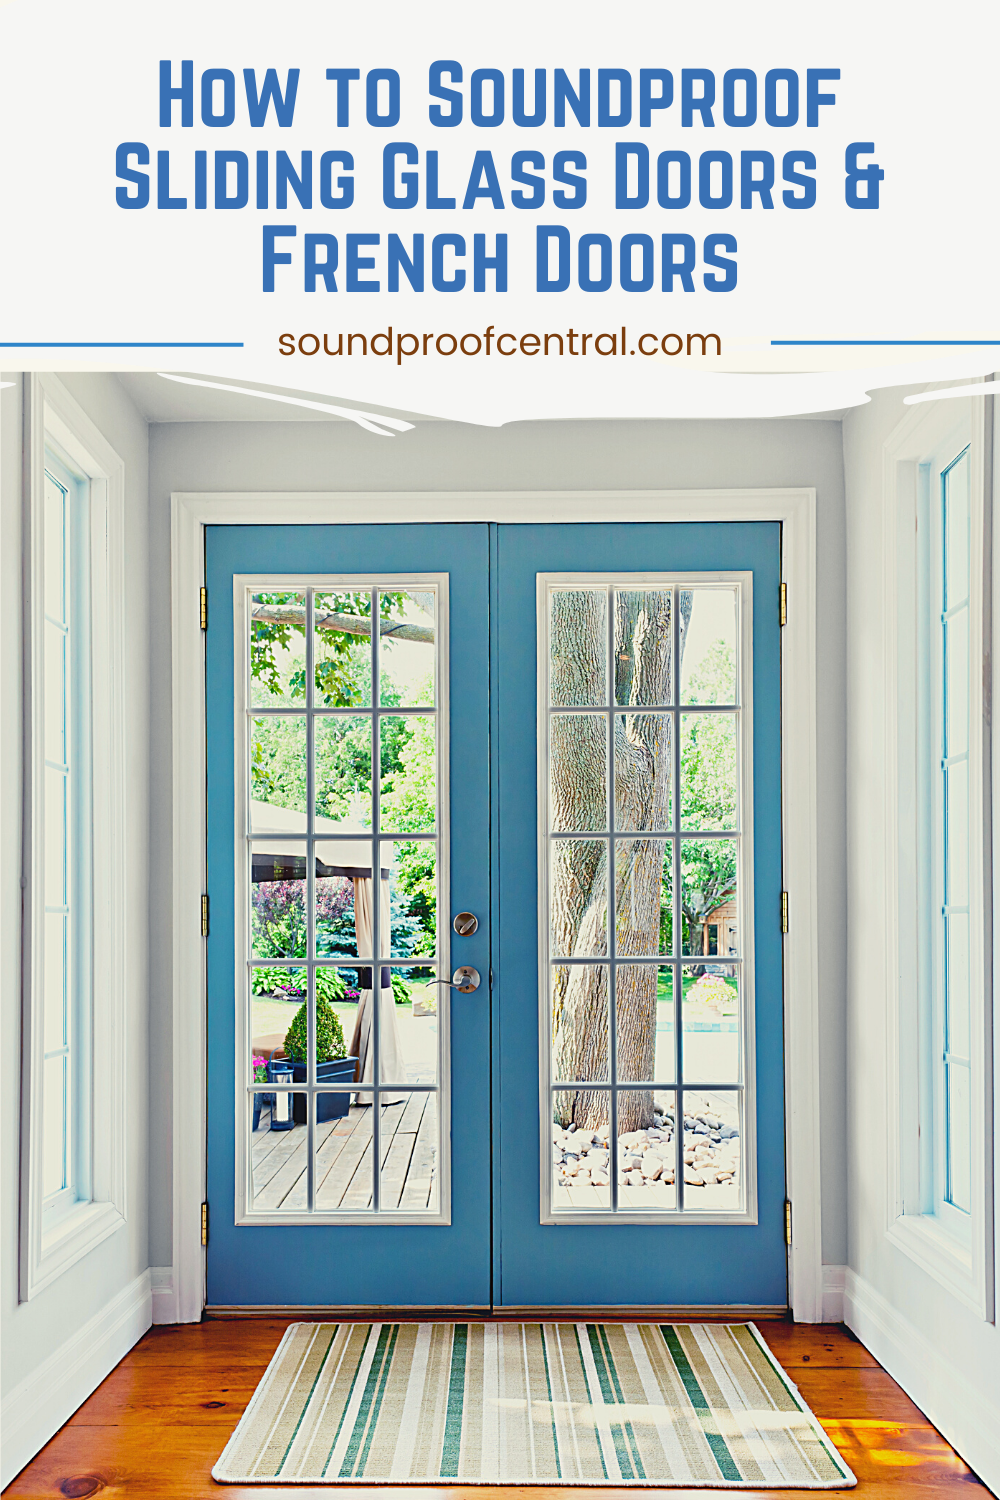 How To Soundproof Sliding Glass Doors And French Doors Soundproof Central In 2020 Glass Door Sliding Glass Door French Doors